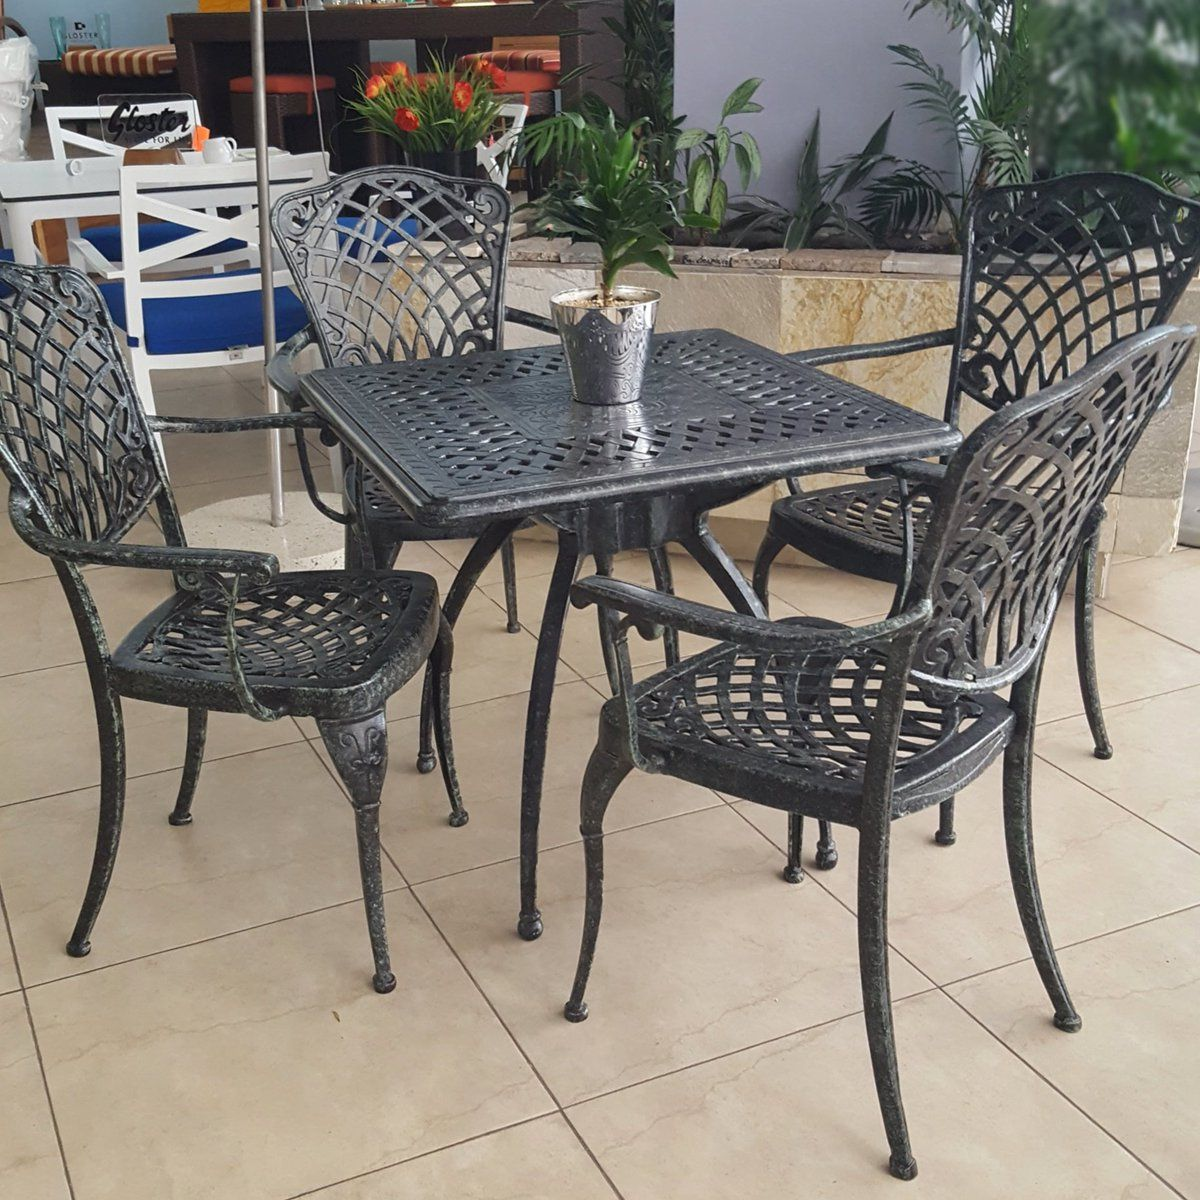 landgrave outdoor furniture best paint to paint furniture check rh pinterest com landgrave garden furniture landgrave garden furniture